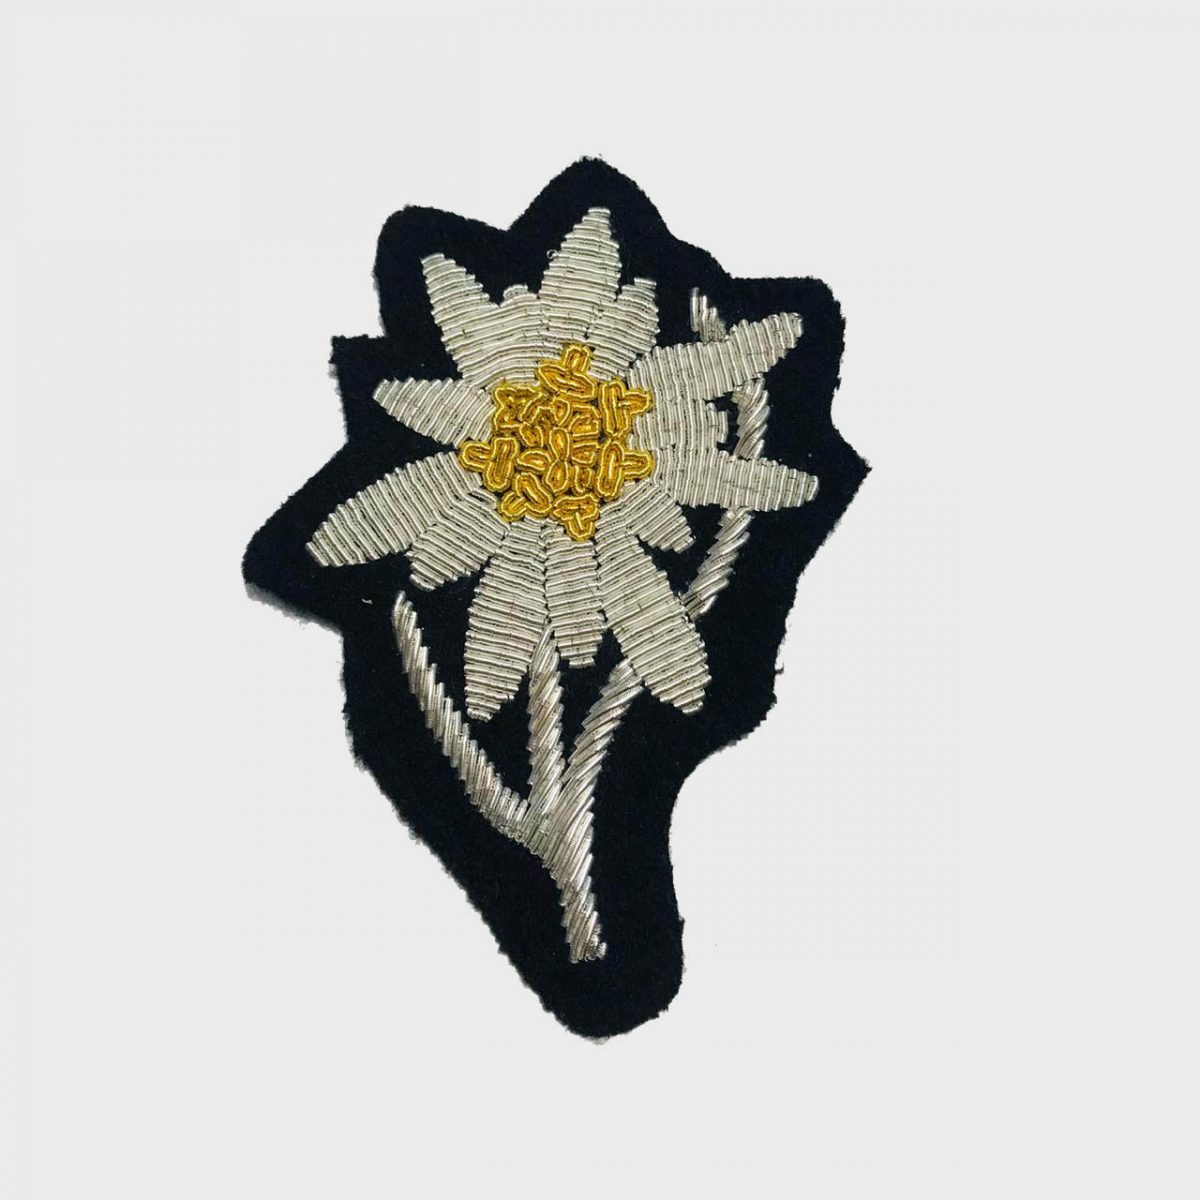 Edelweiss Flower Bullion Embroidered Badge , Sew-on Applique Patch - Edelweiss Embroidered PatchSize # 3 inchesSew-on backingSilver bullion wires embroidered on felt  2